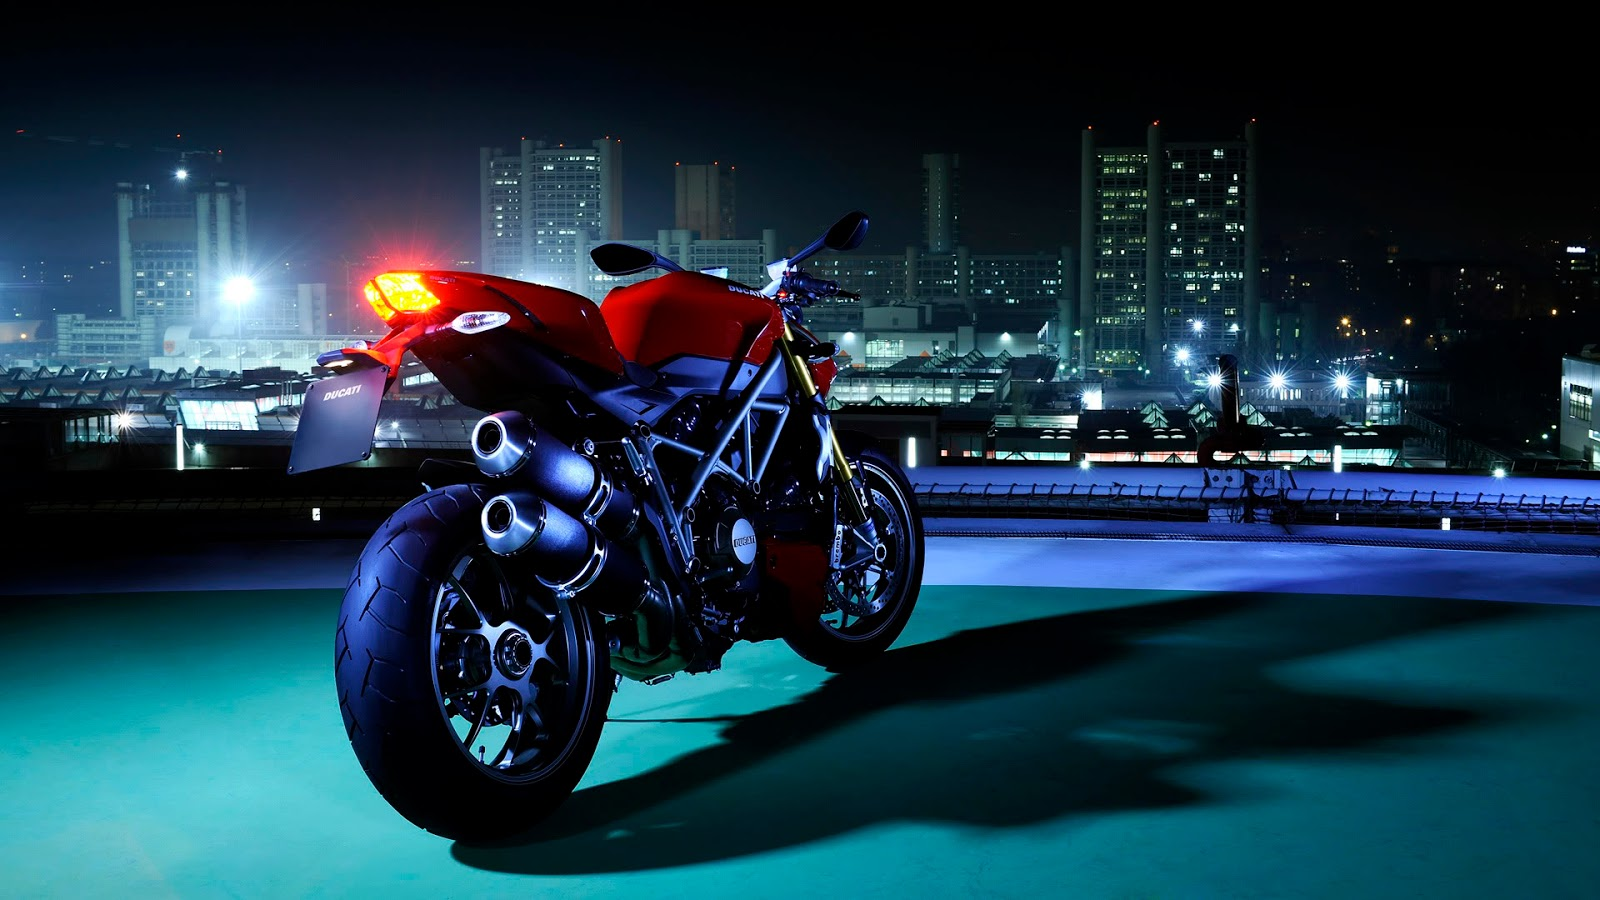 New Full Hd 1080p Ducati Wallpapers Hd Desktop Backgrounds